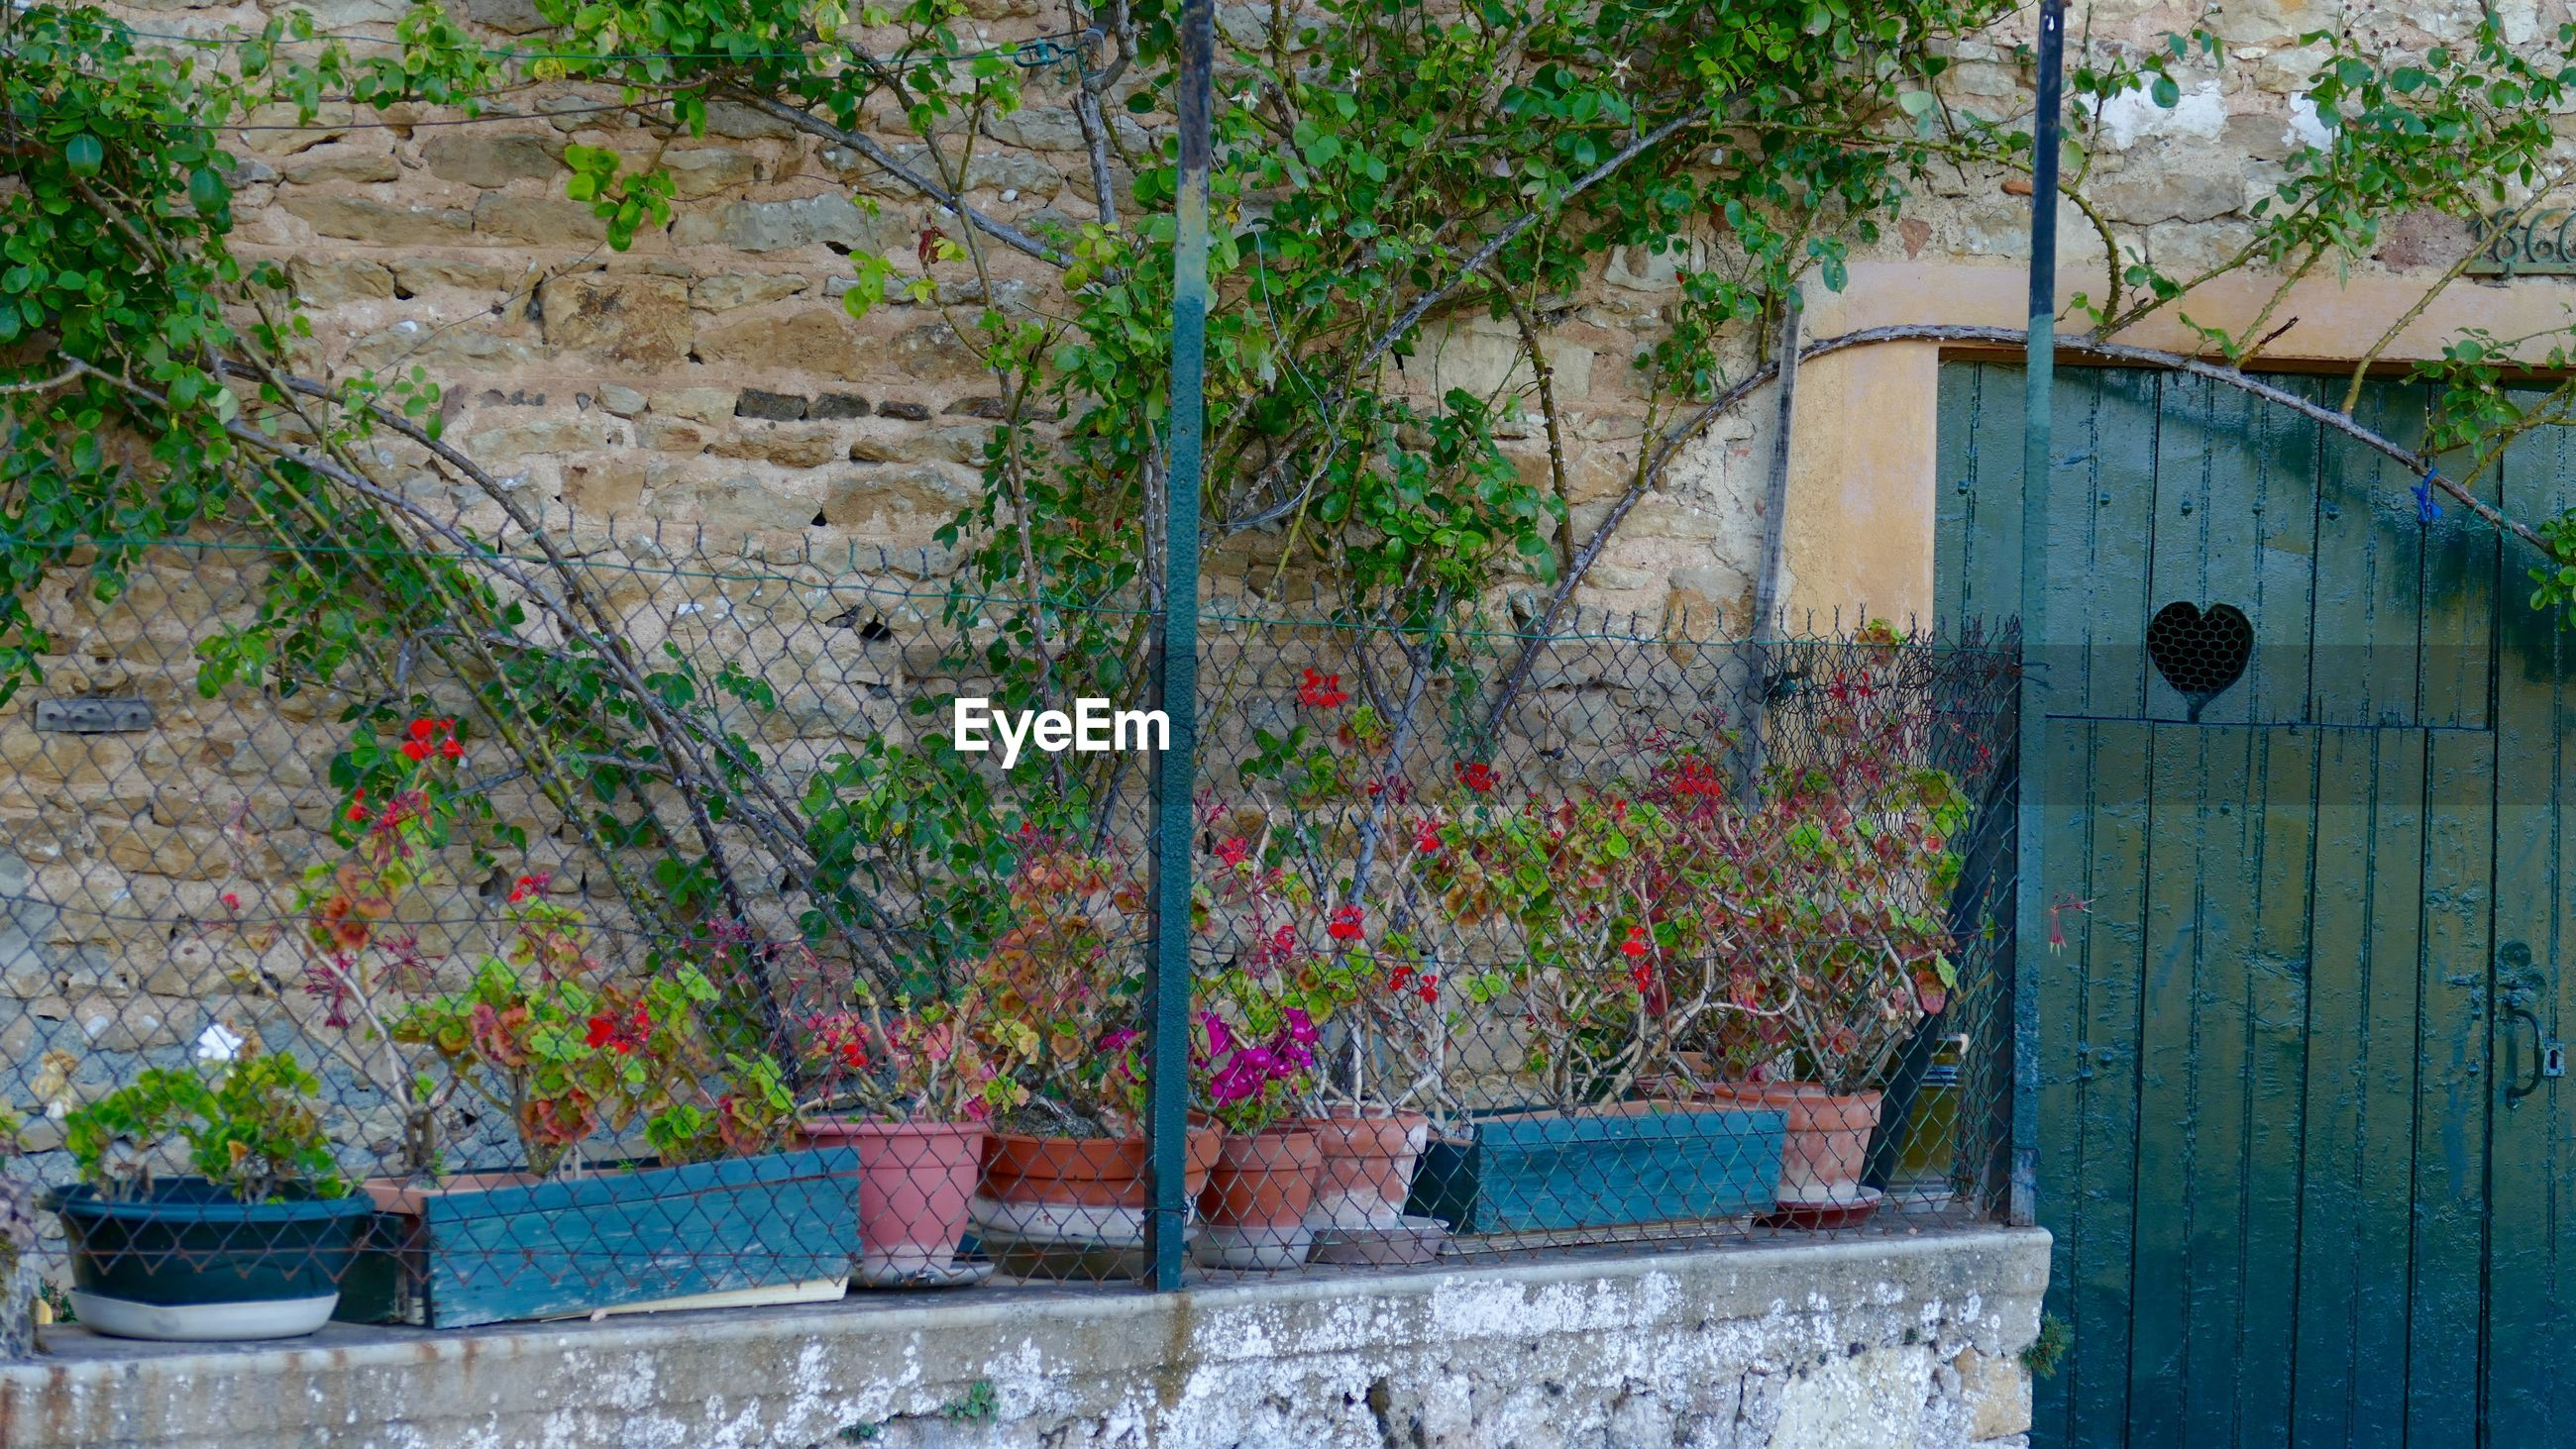 Potted plants outside house